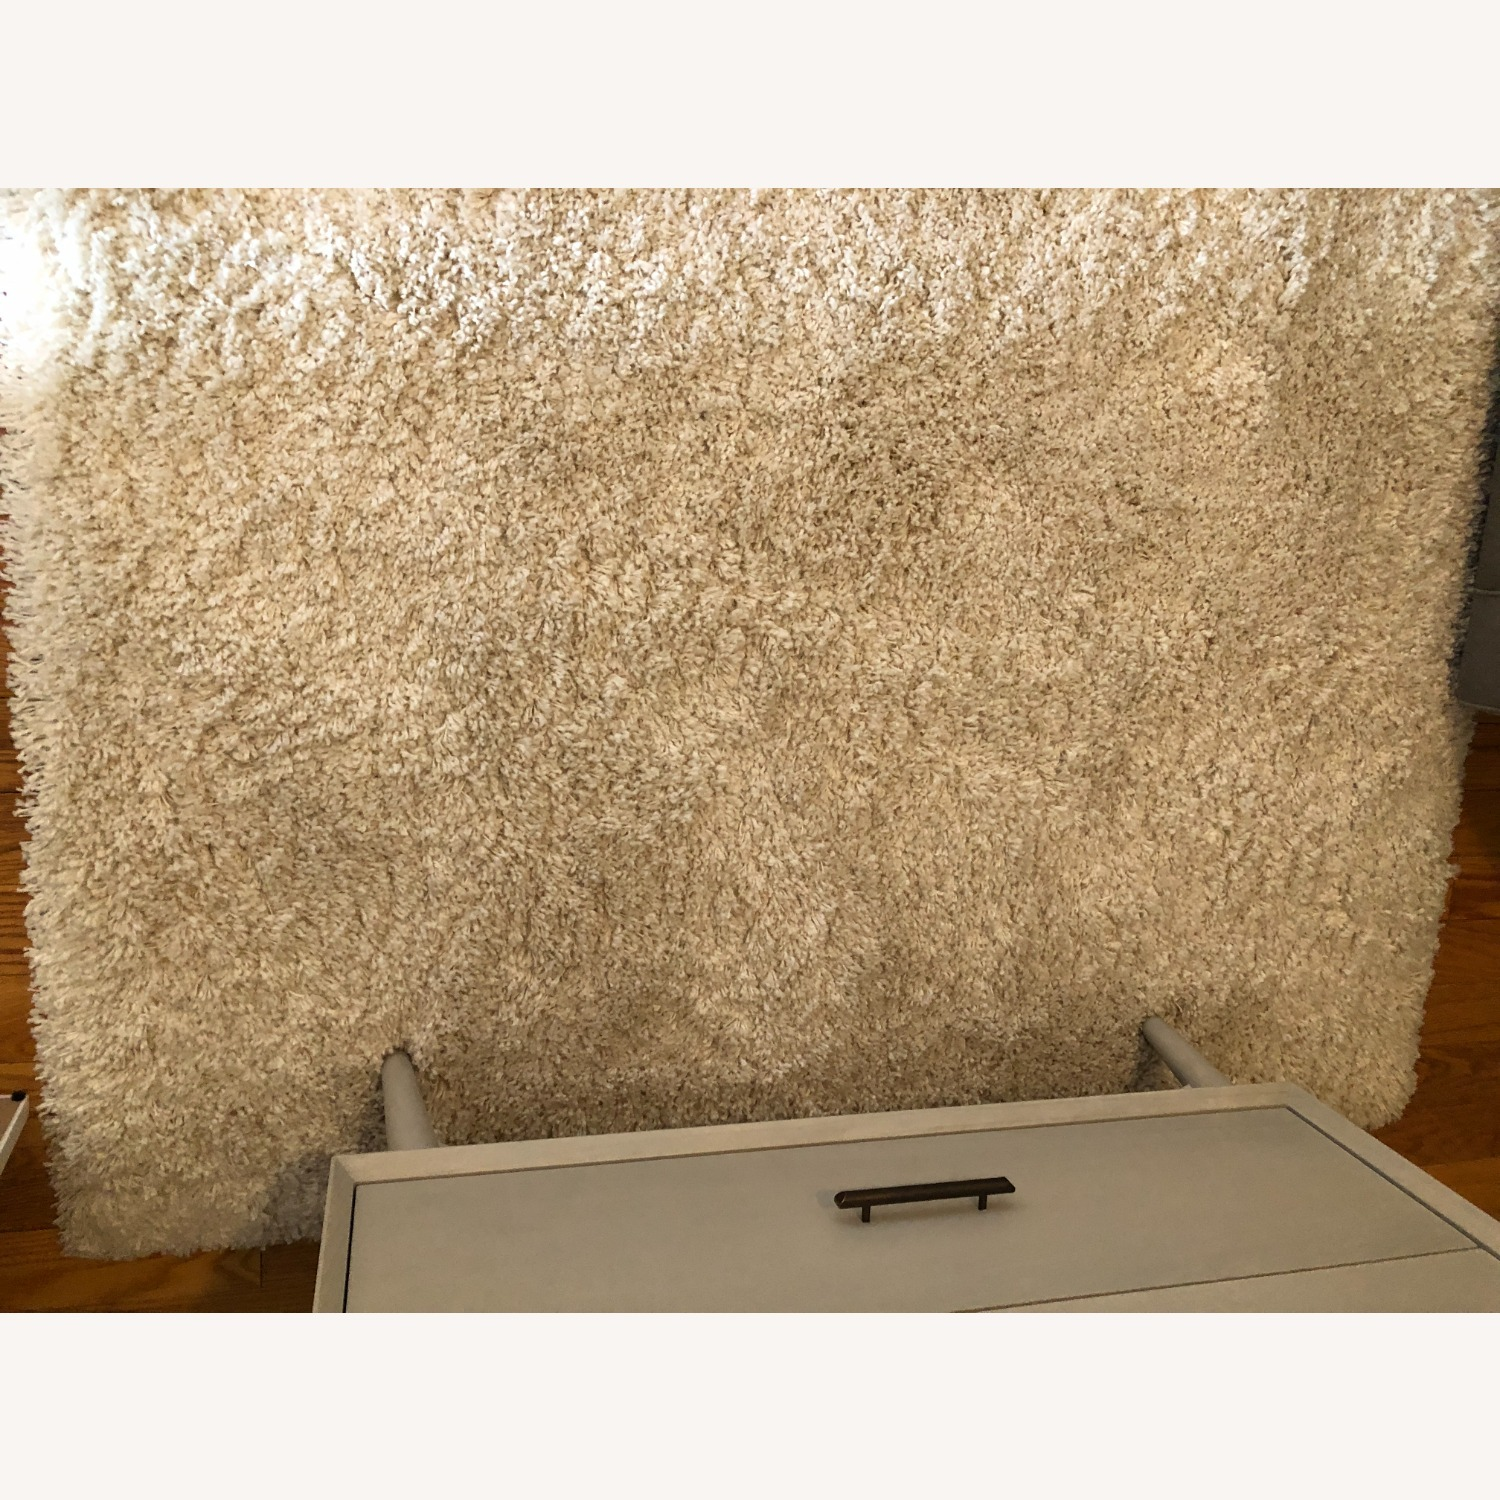 Crate & Barrel Memphis White 5x8' Rug - image-7